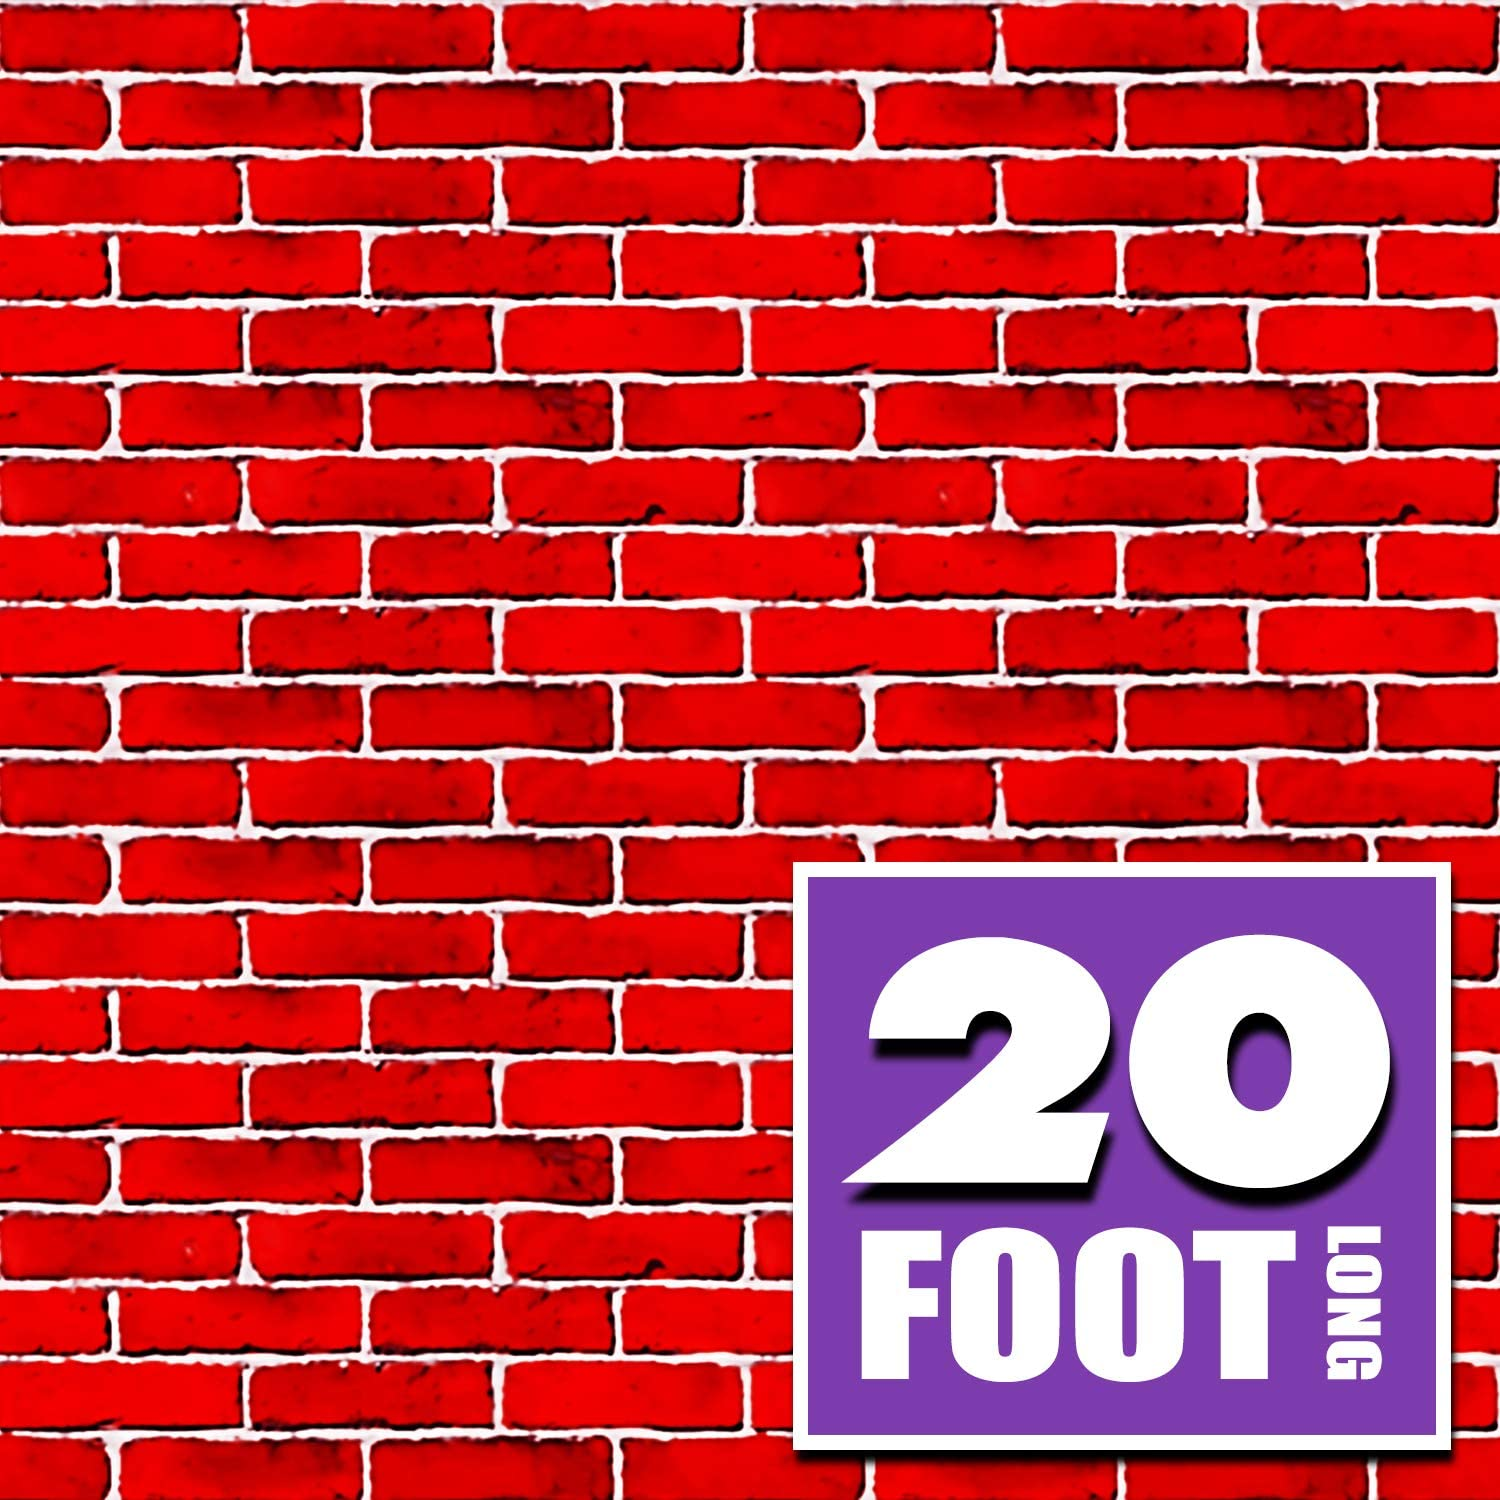 Red Brick Wall Party Backdrop | 4 Foot x 20 Foot | Party Supplies Decoration | Background for Holiday Decoration (4' x 20')